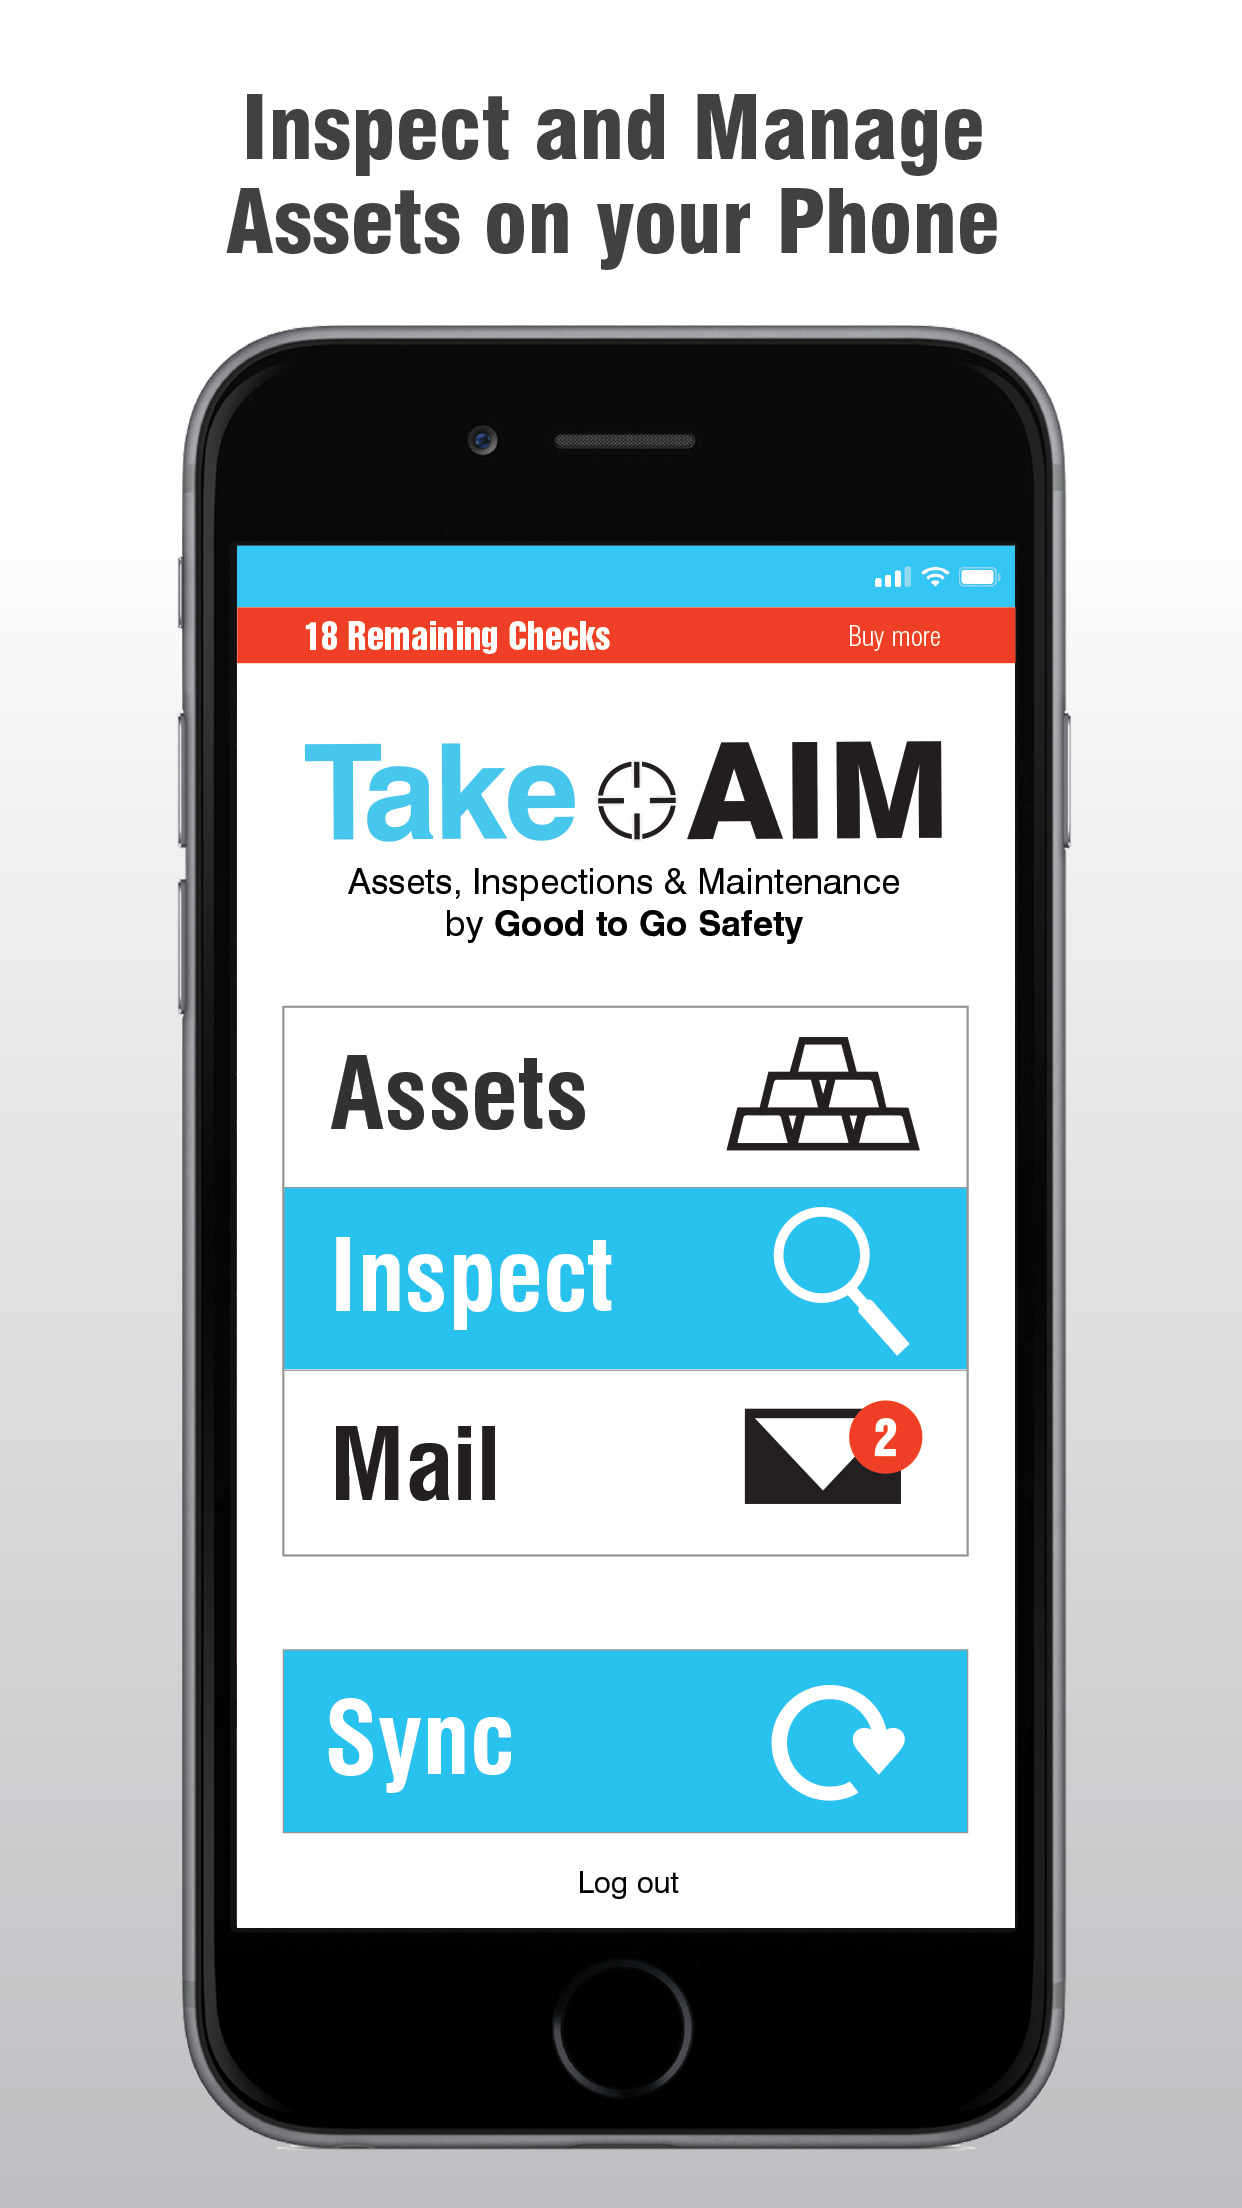 Inspect and manage assets on your mobile phone or tablet